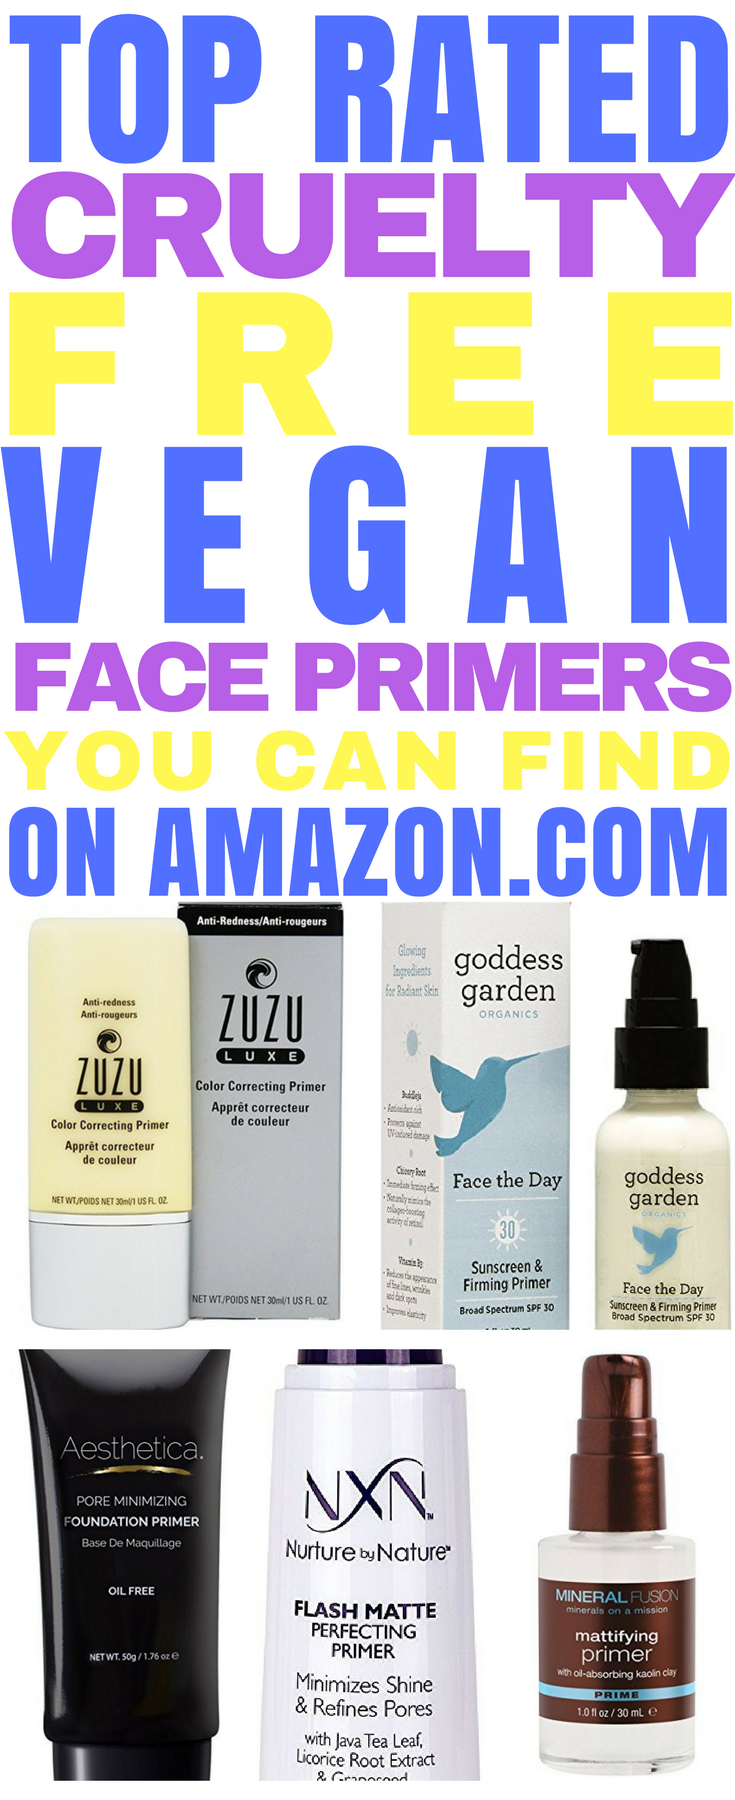 5 Best Cruelty Free Vegan Face Primers, On Amazon Face